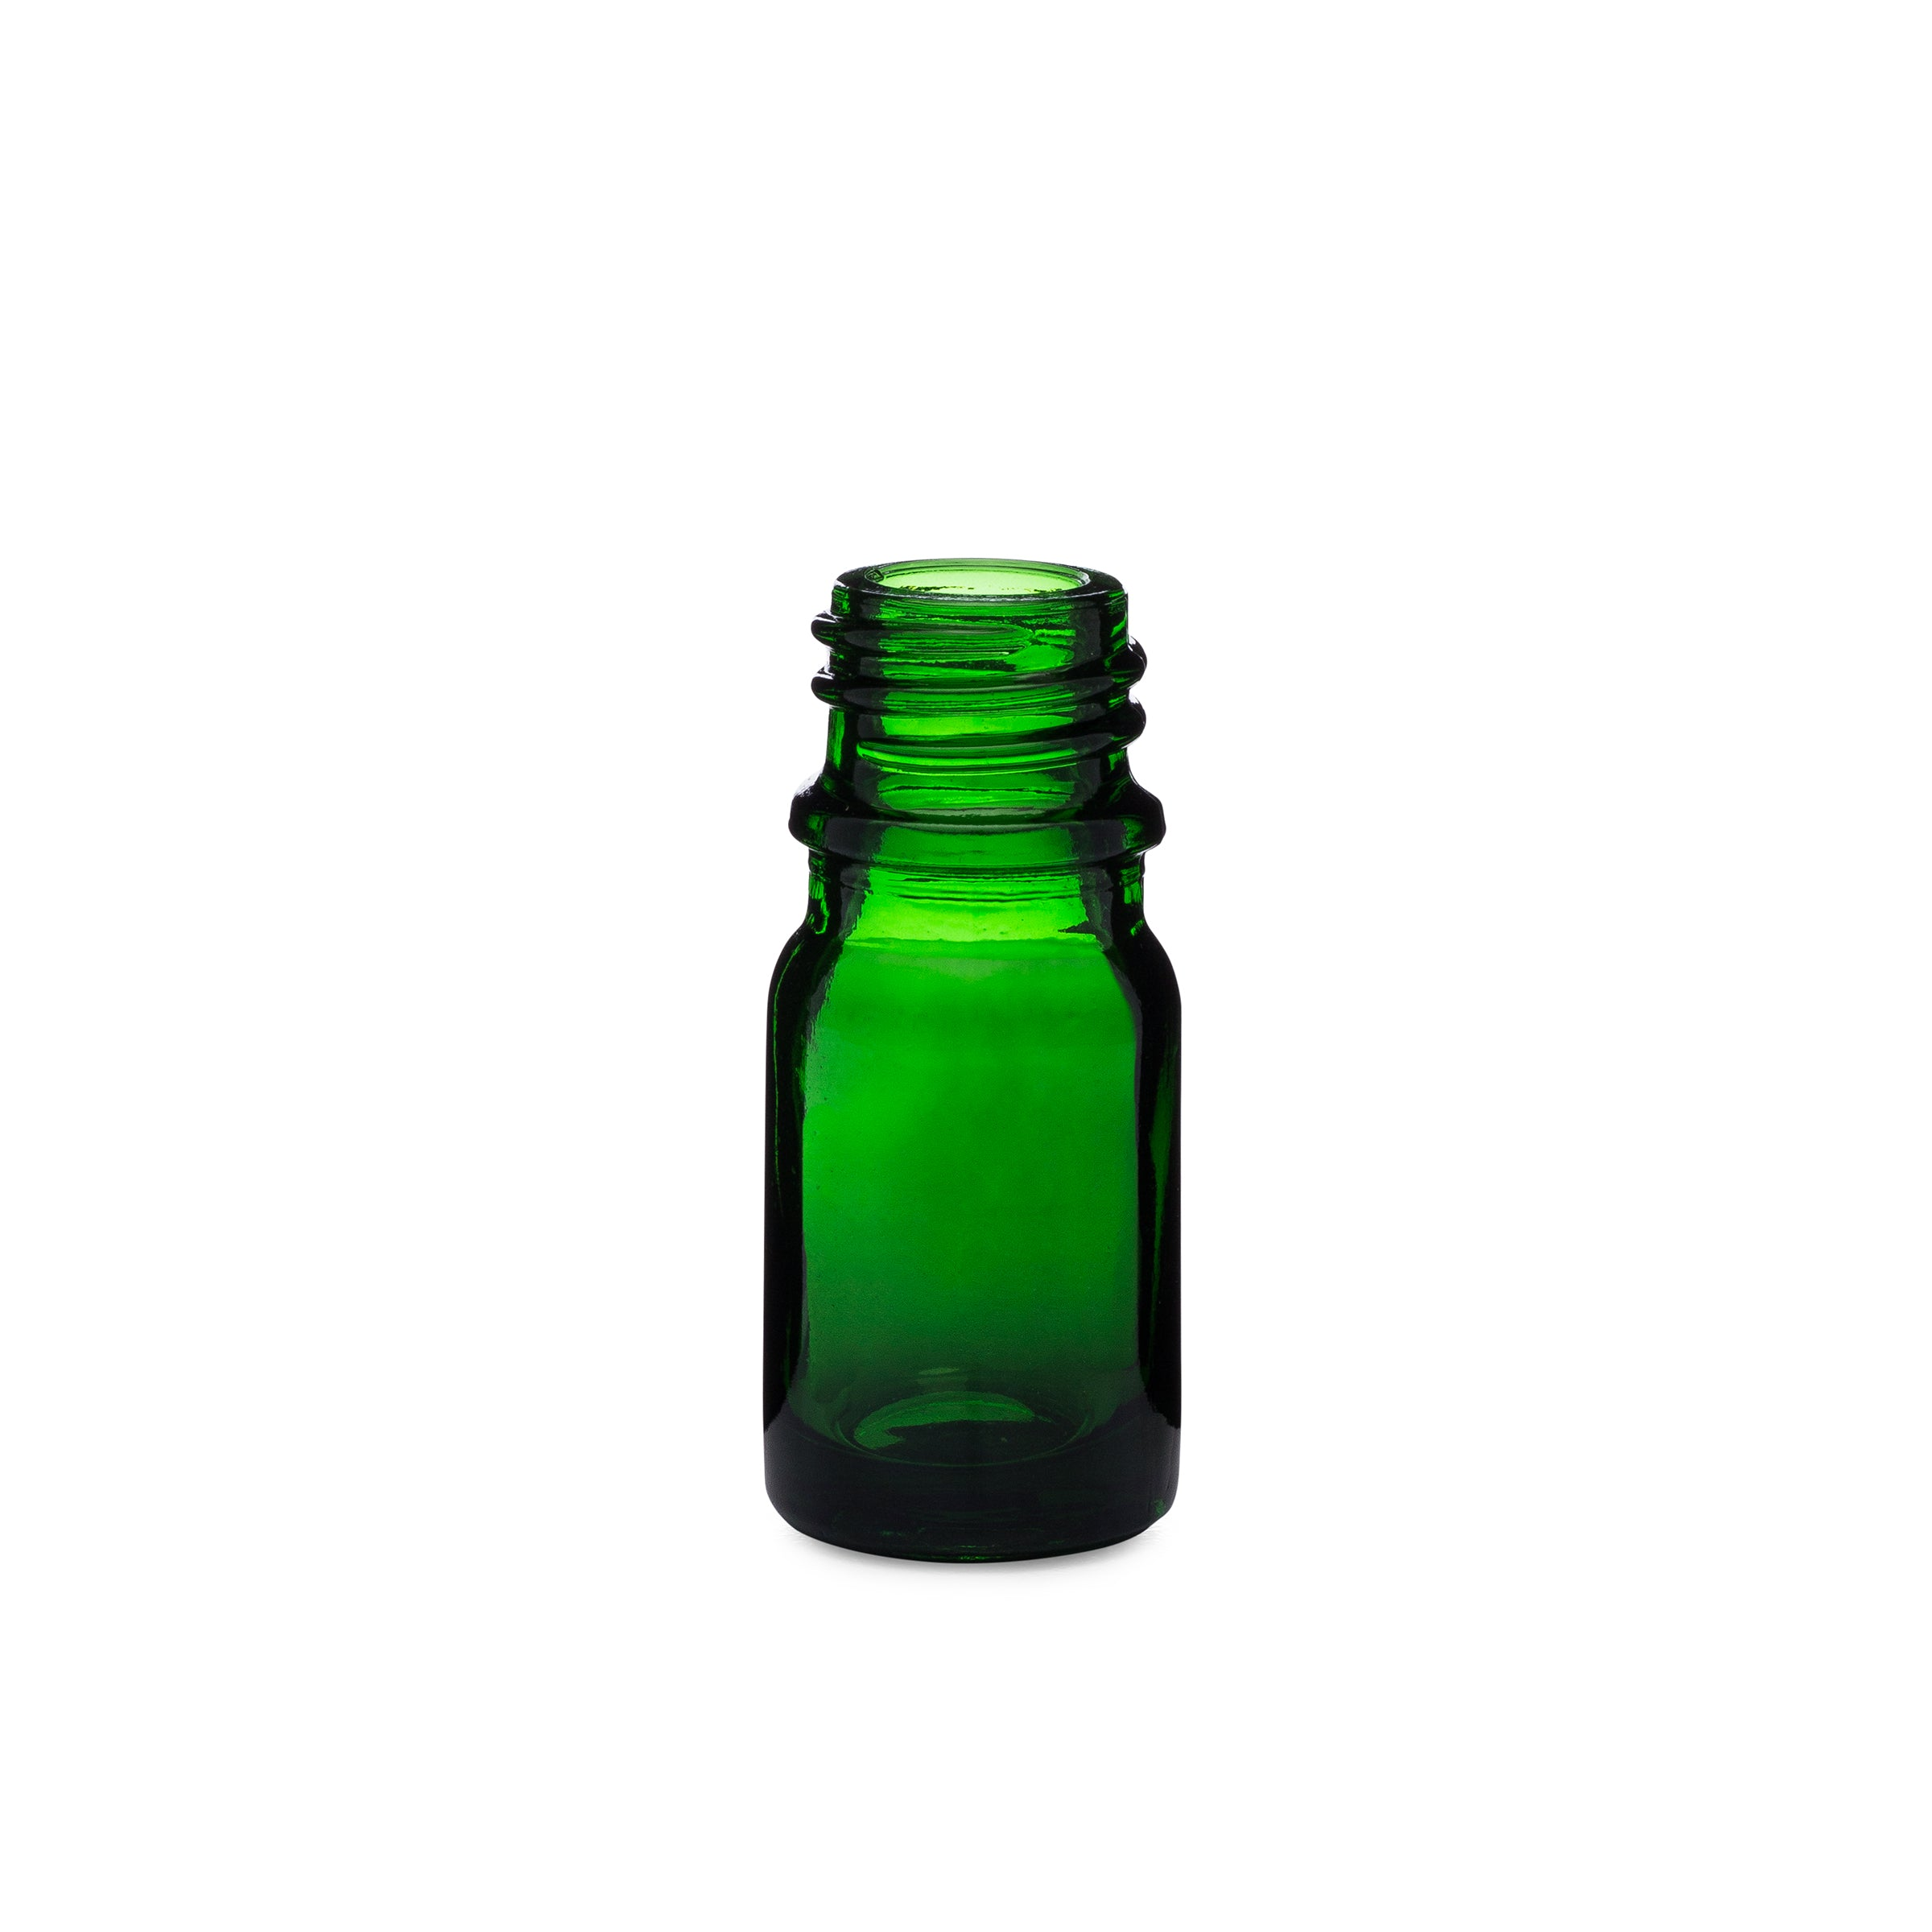 5ml Green Dropper Bottle